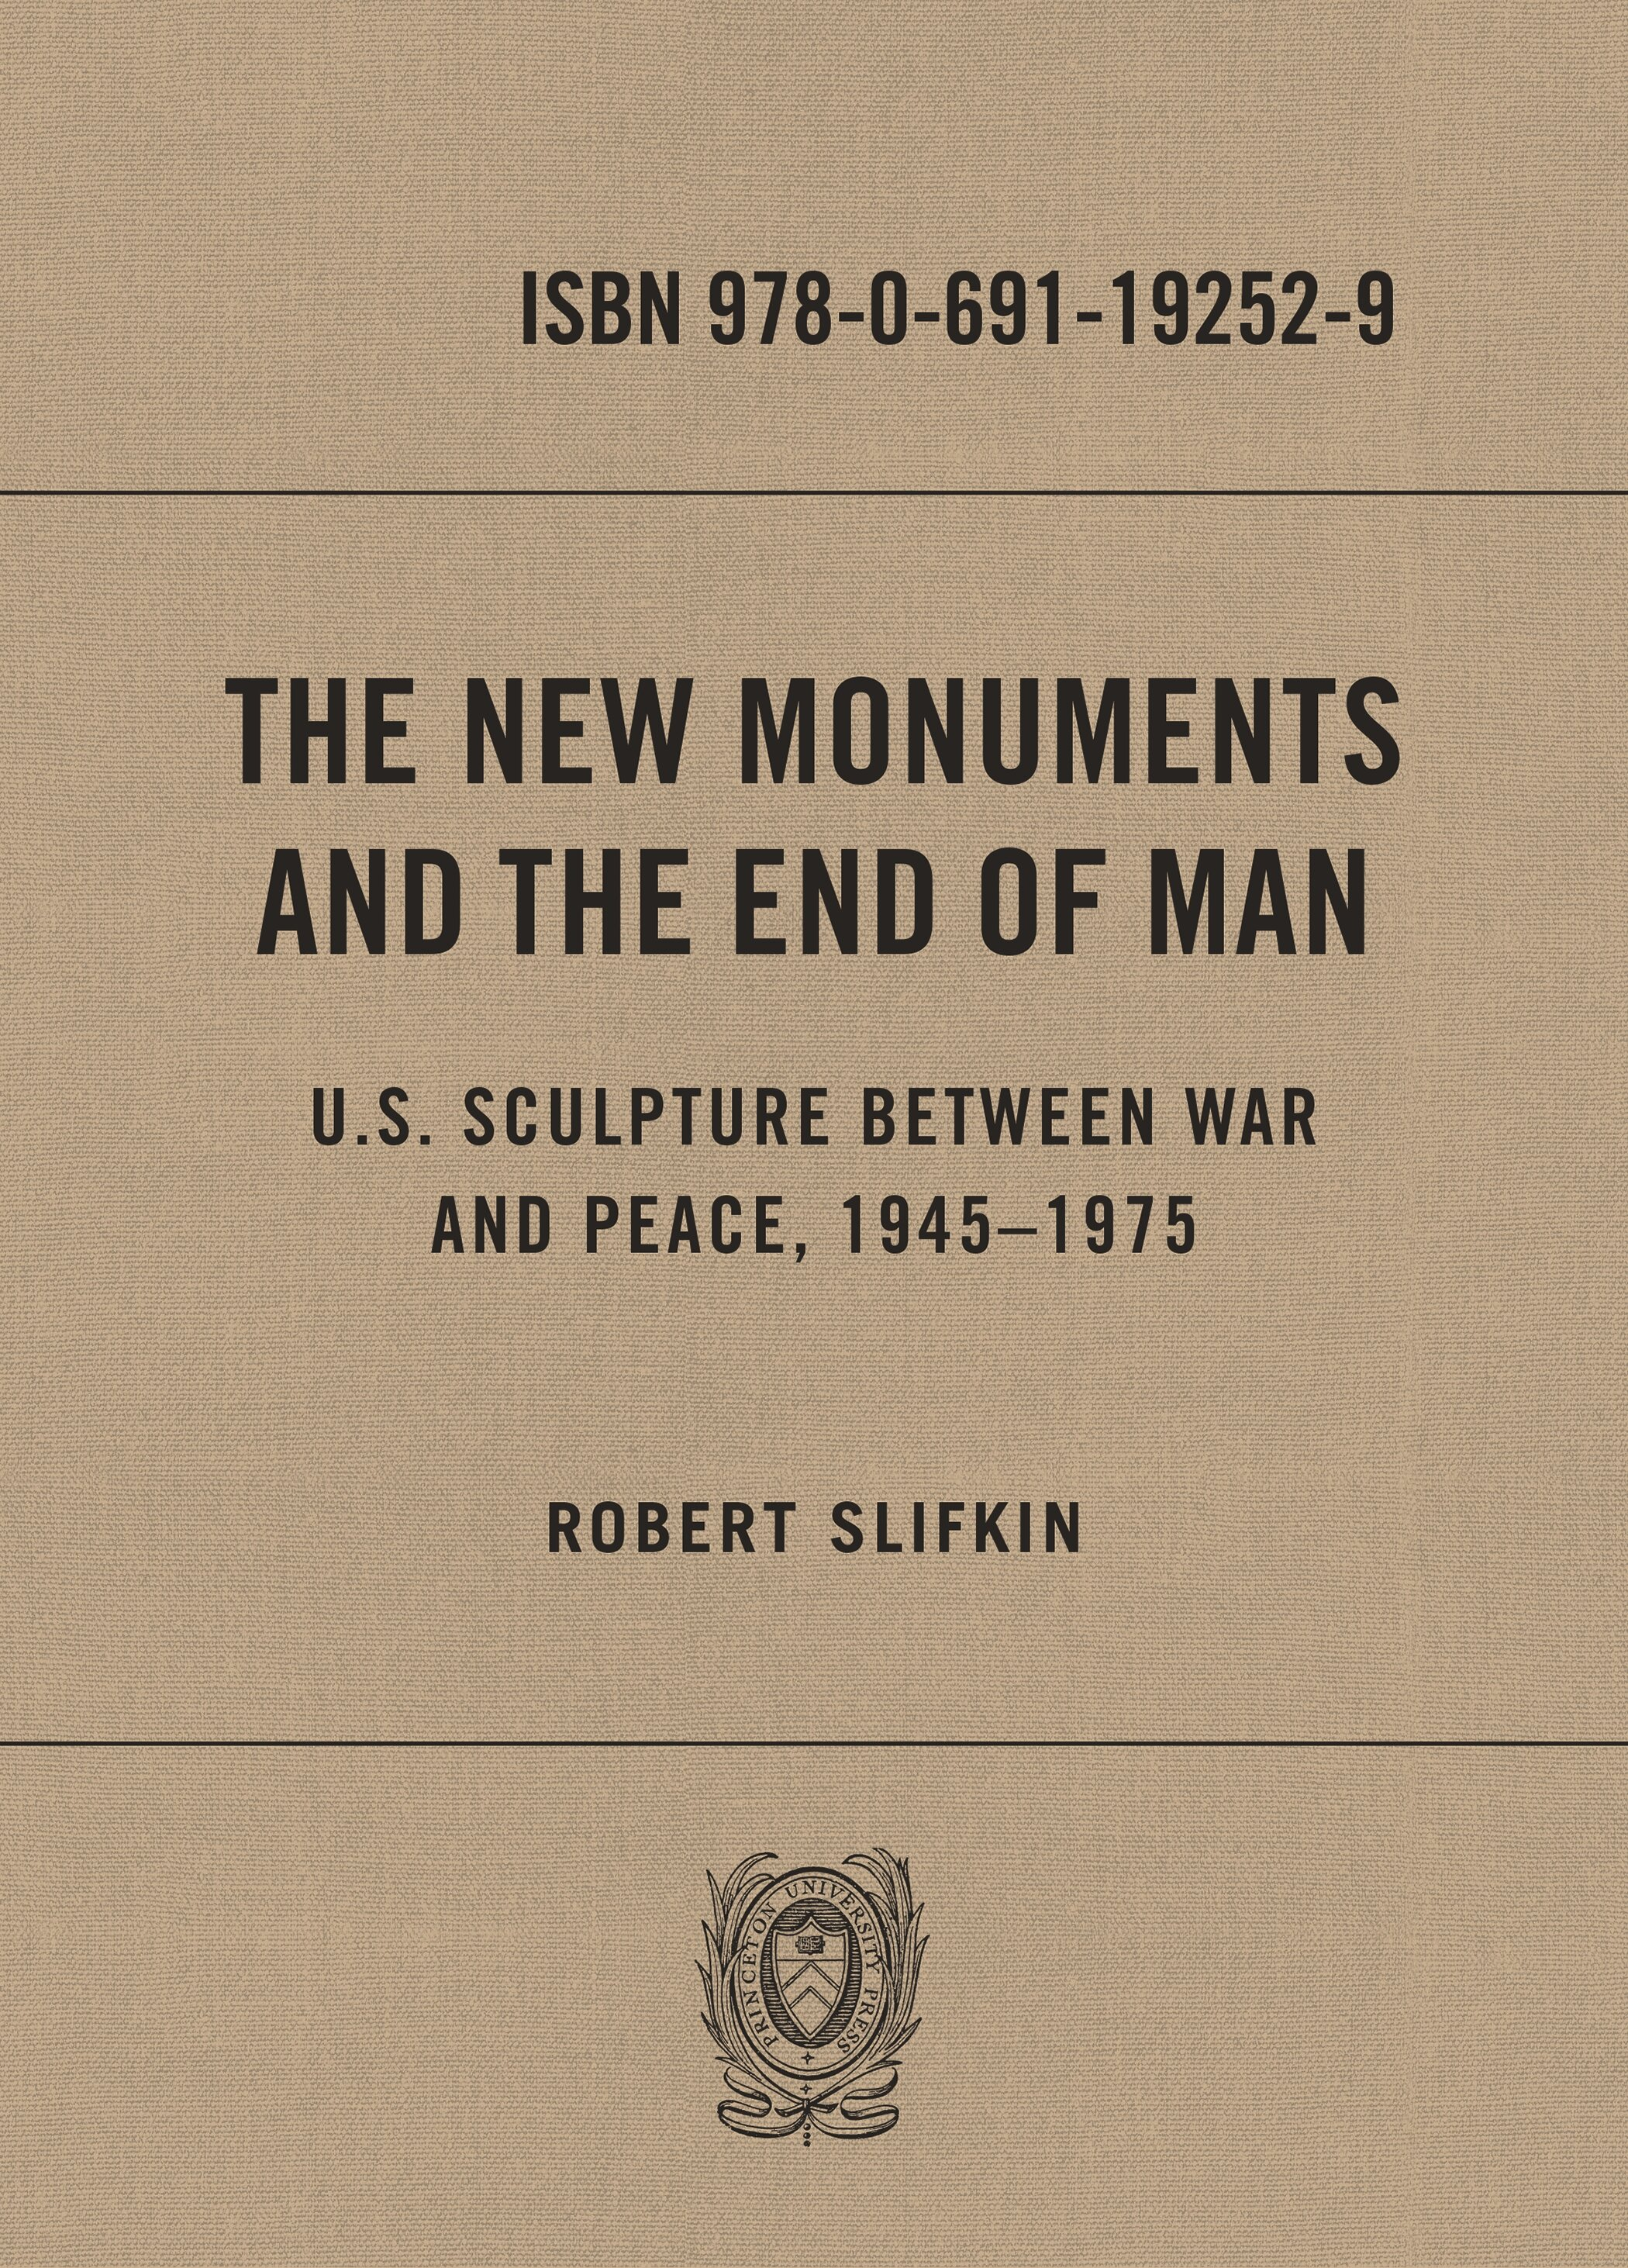 Slifkin_The New Monuments and the End of Man_F19.jpg